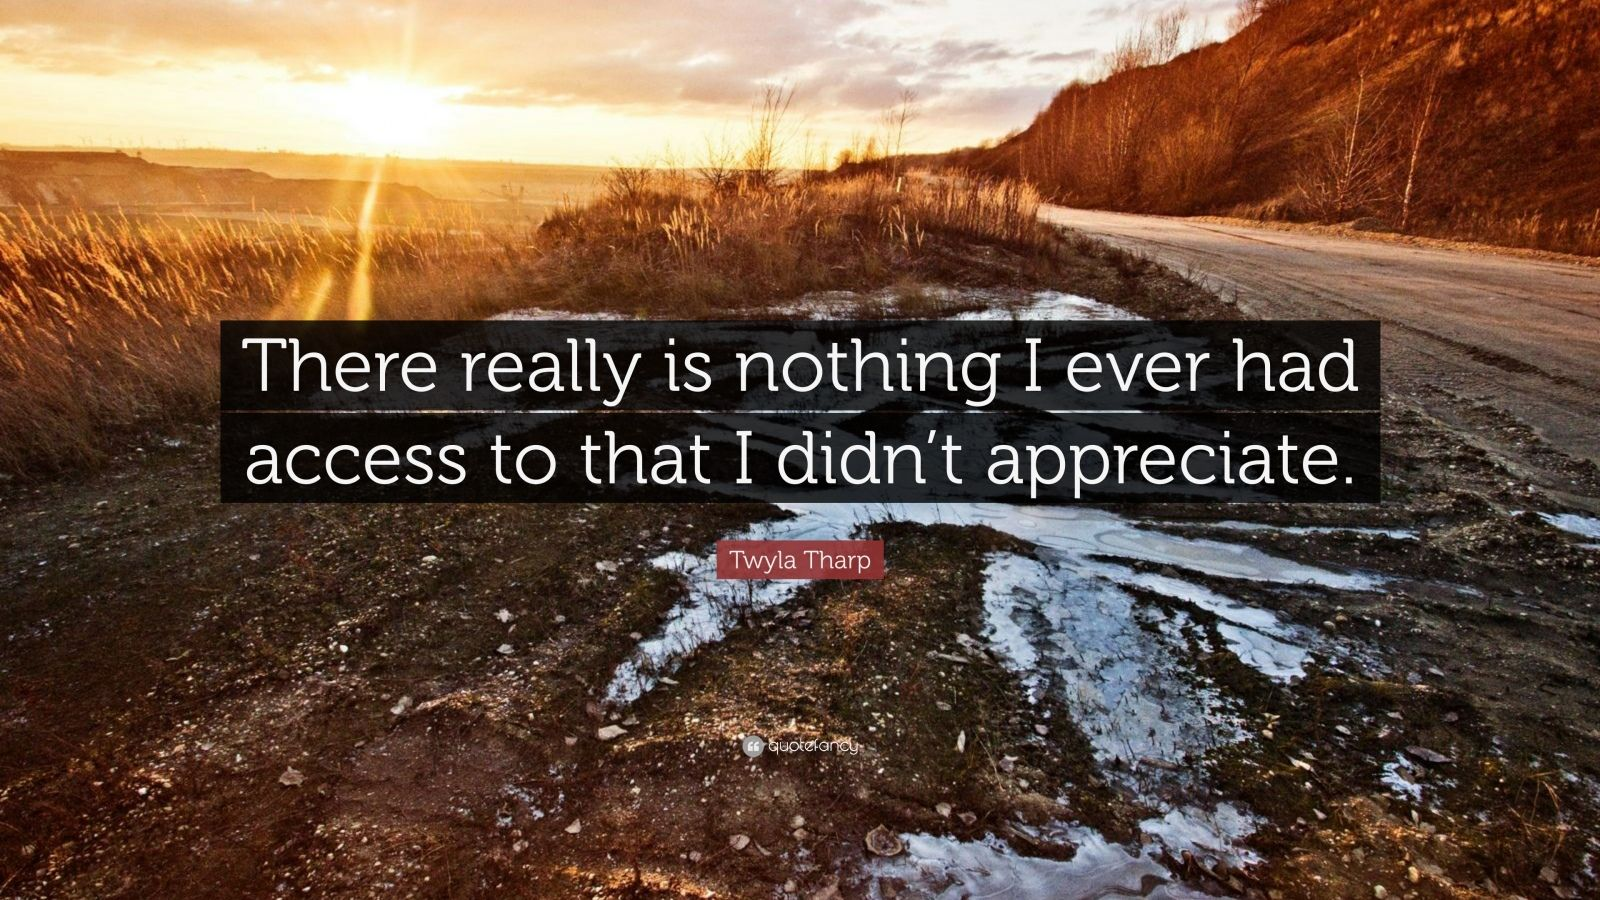 """Twyla Tharp Quote: """"There really is nothing I ever had access to that I didn't appreciate."""""""